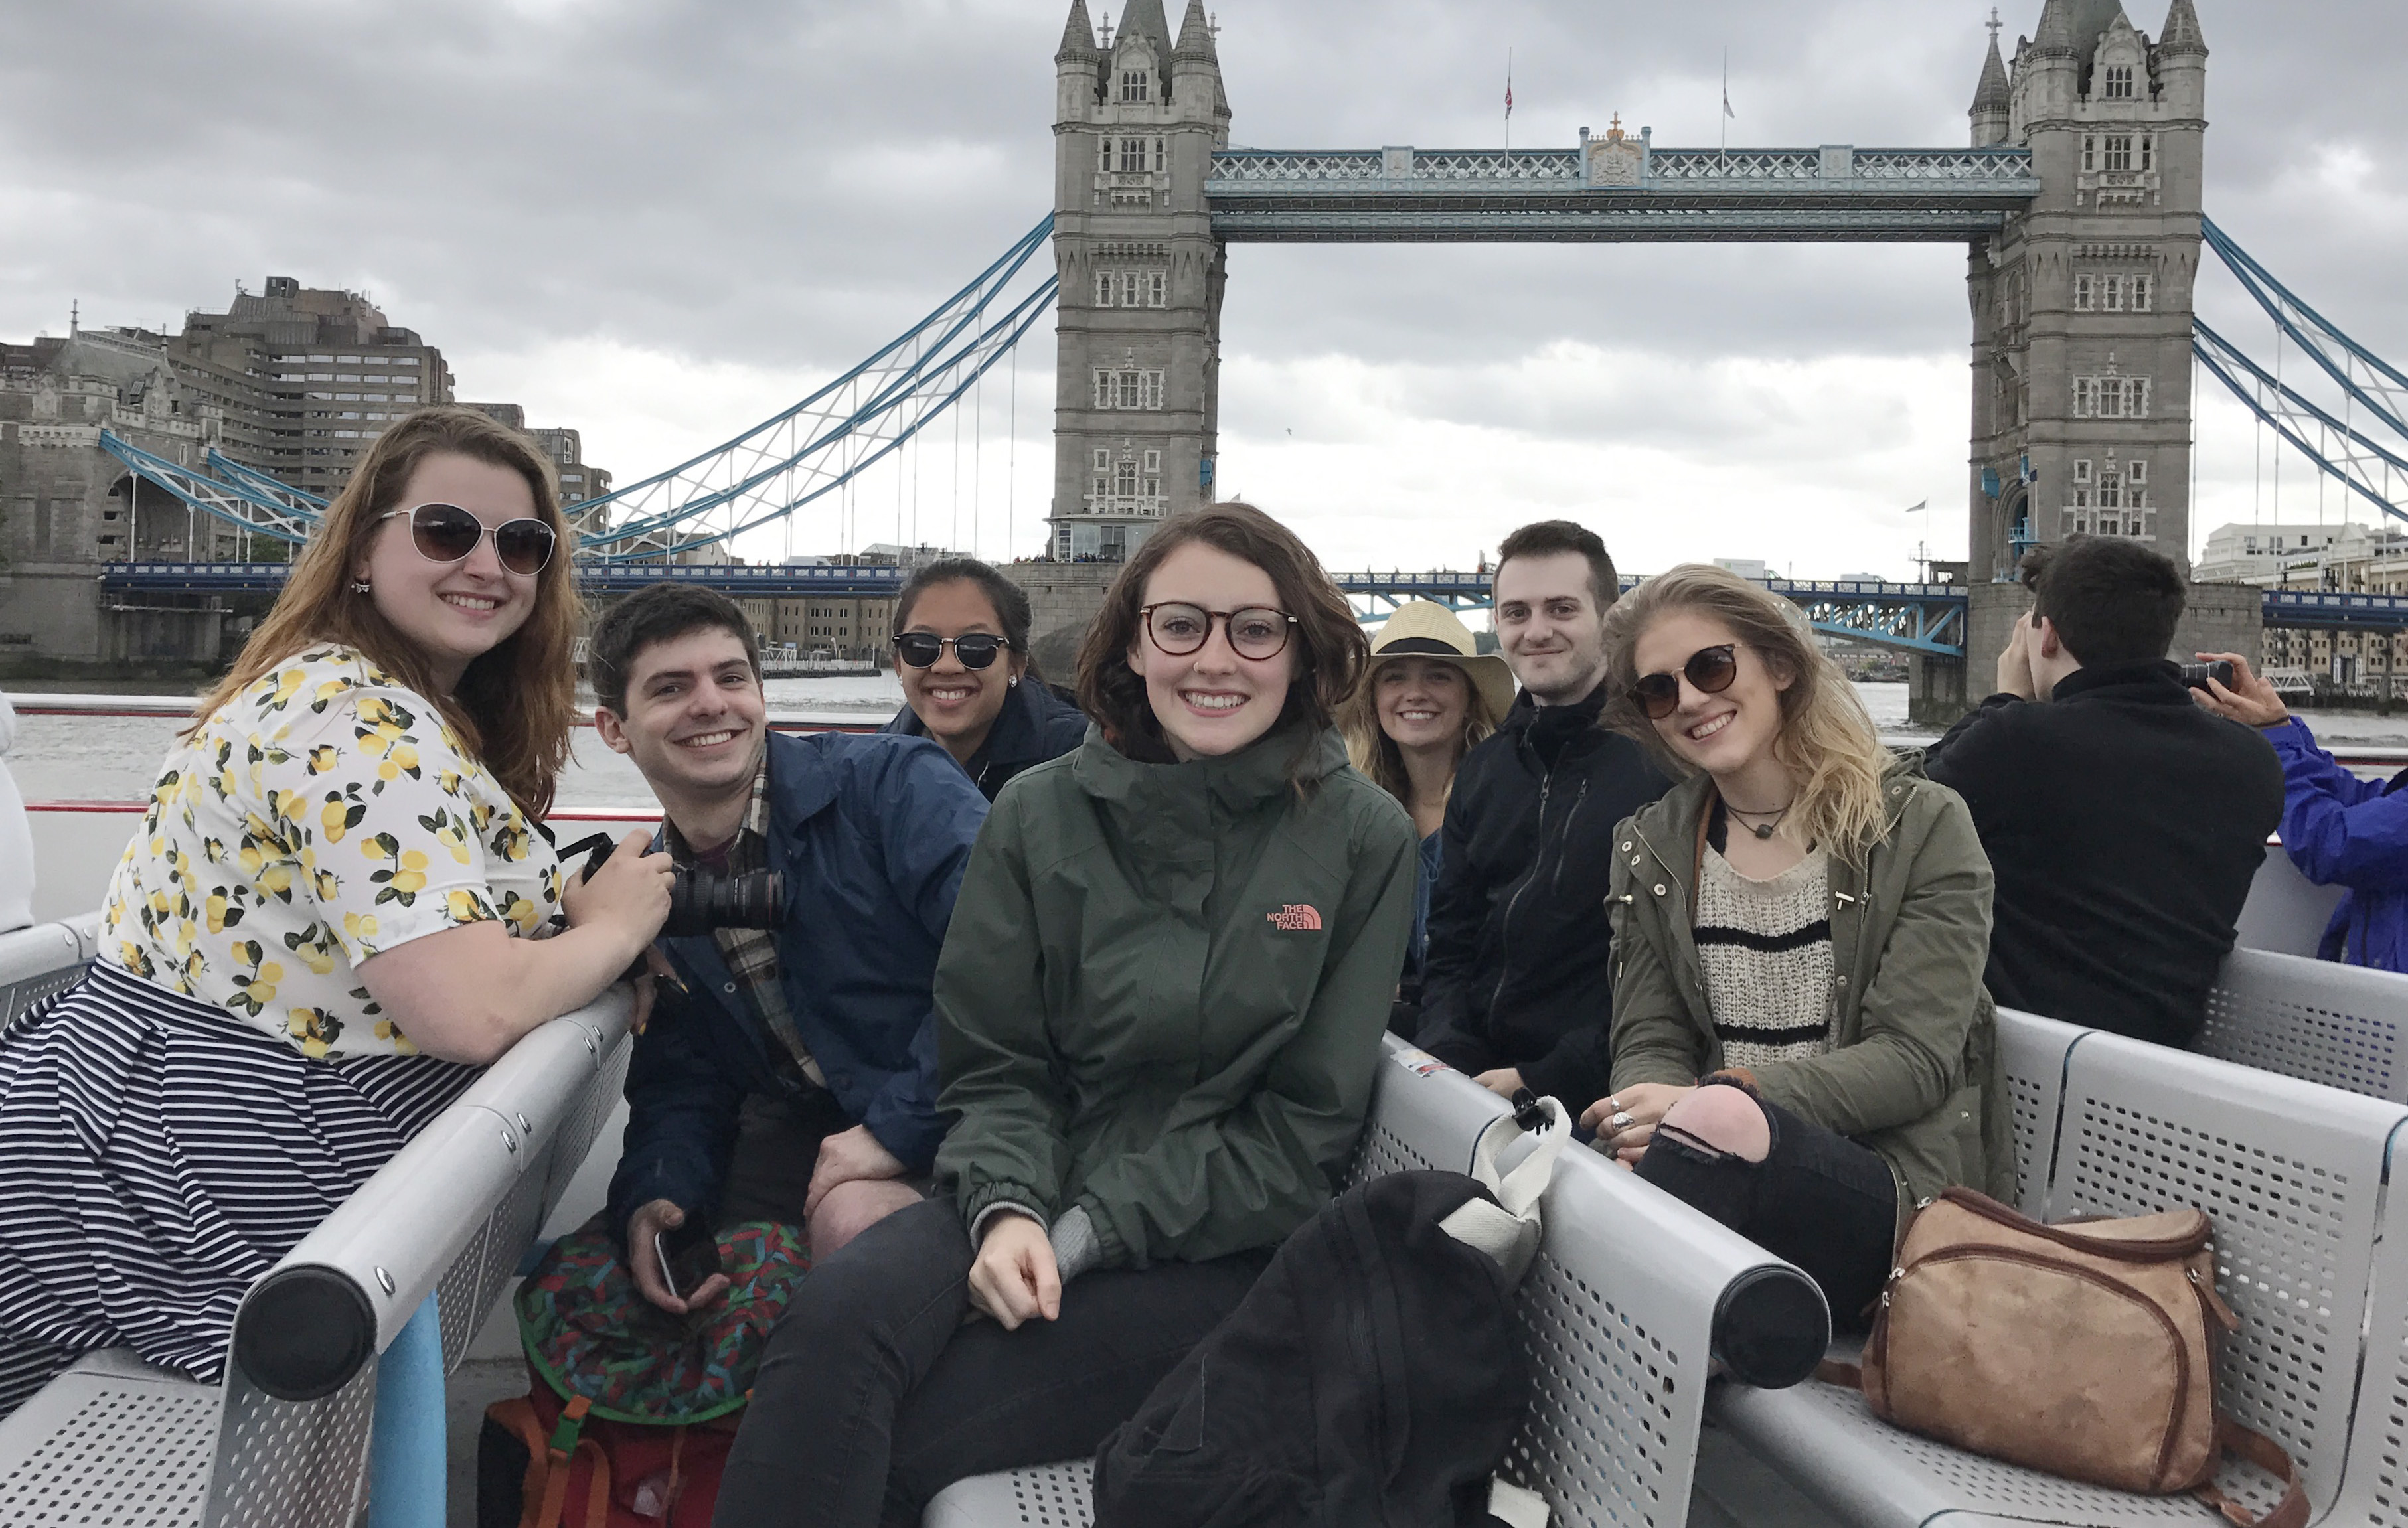 A group of UMass Lowell design students in front of Tower Bridge in London this past summer.